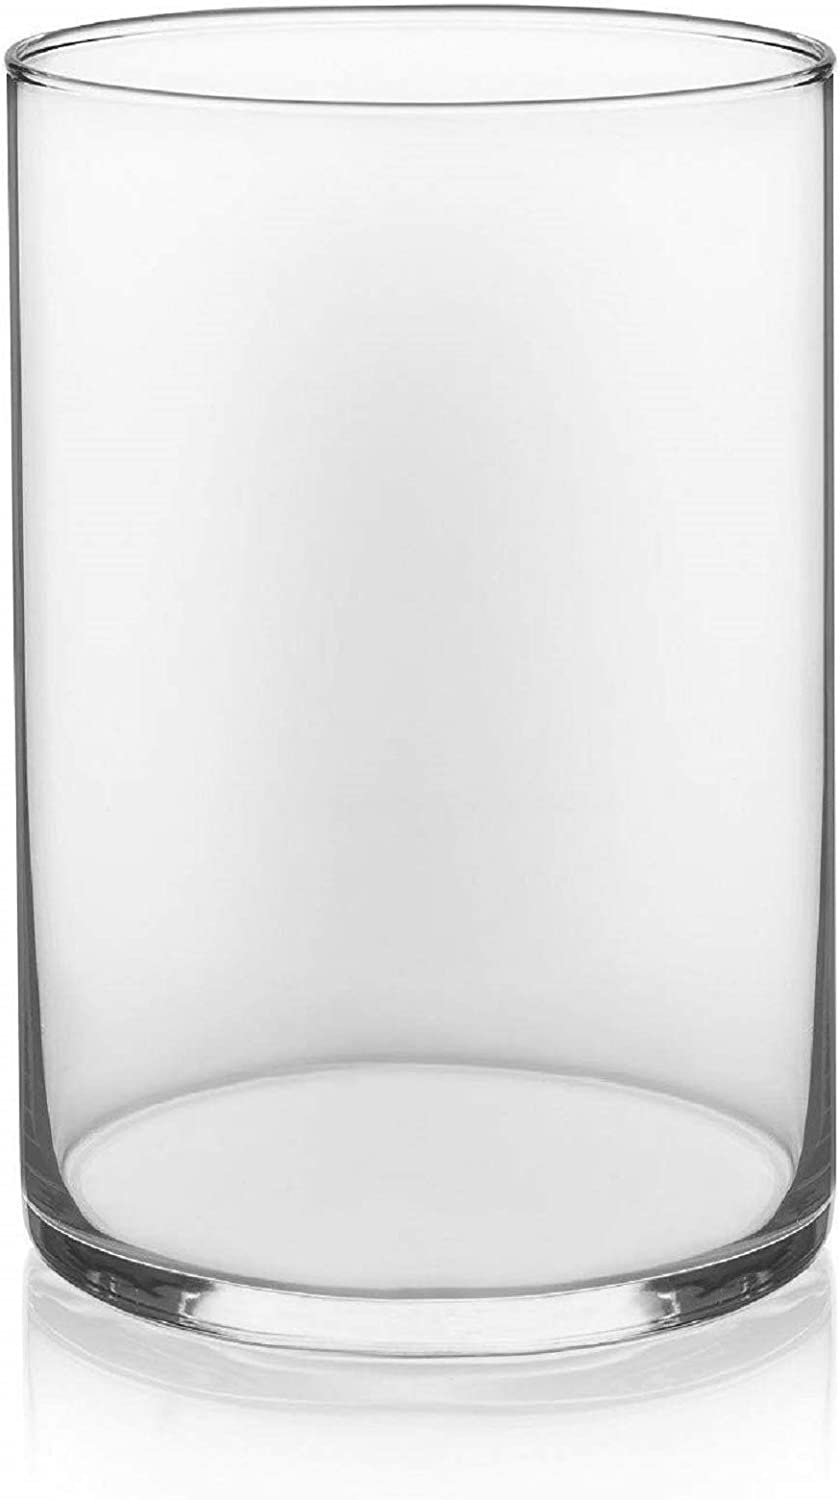 "Floral Supply Online 10"" Tall x 5"" Wide Cylinder Glass Vase for Weddings, Events, Decorating, Arrangements, Flowers, Office, or Home Decor."